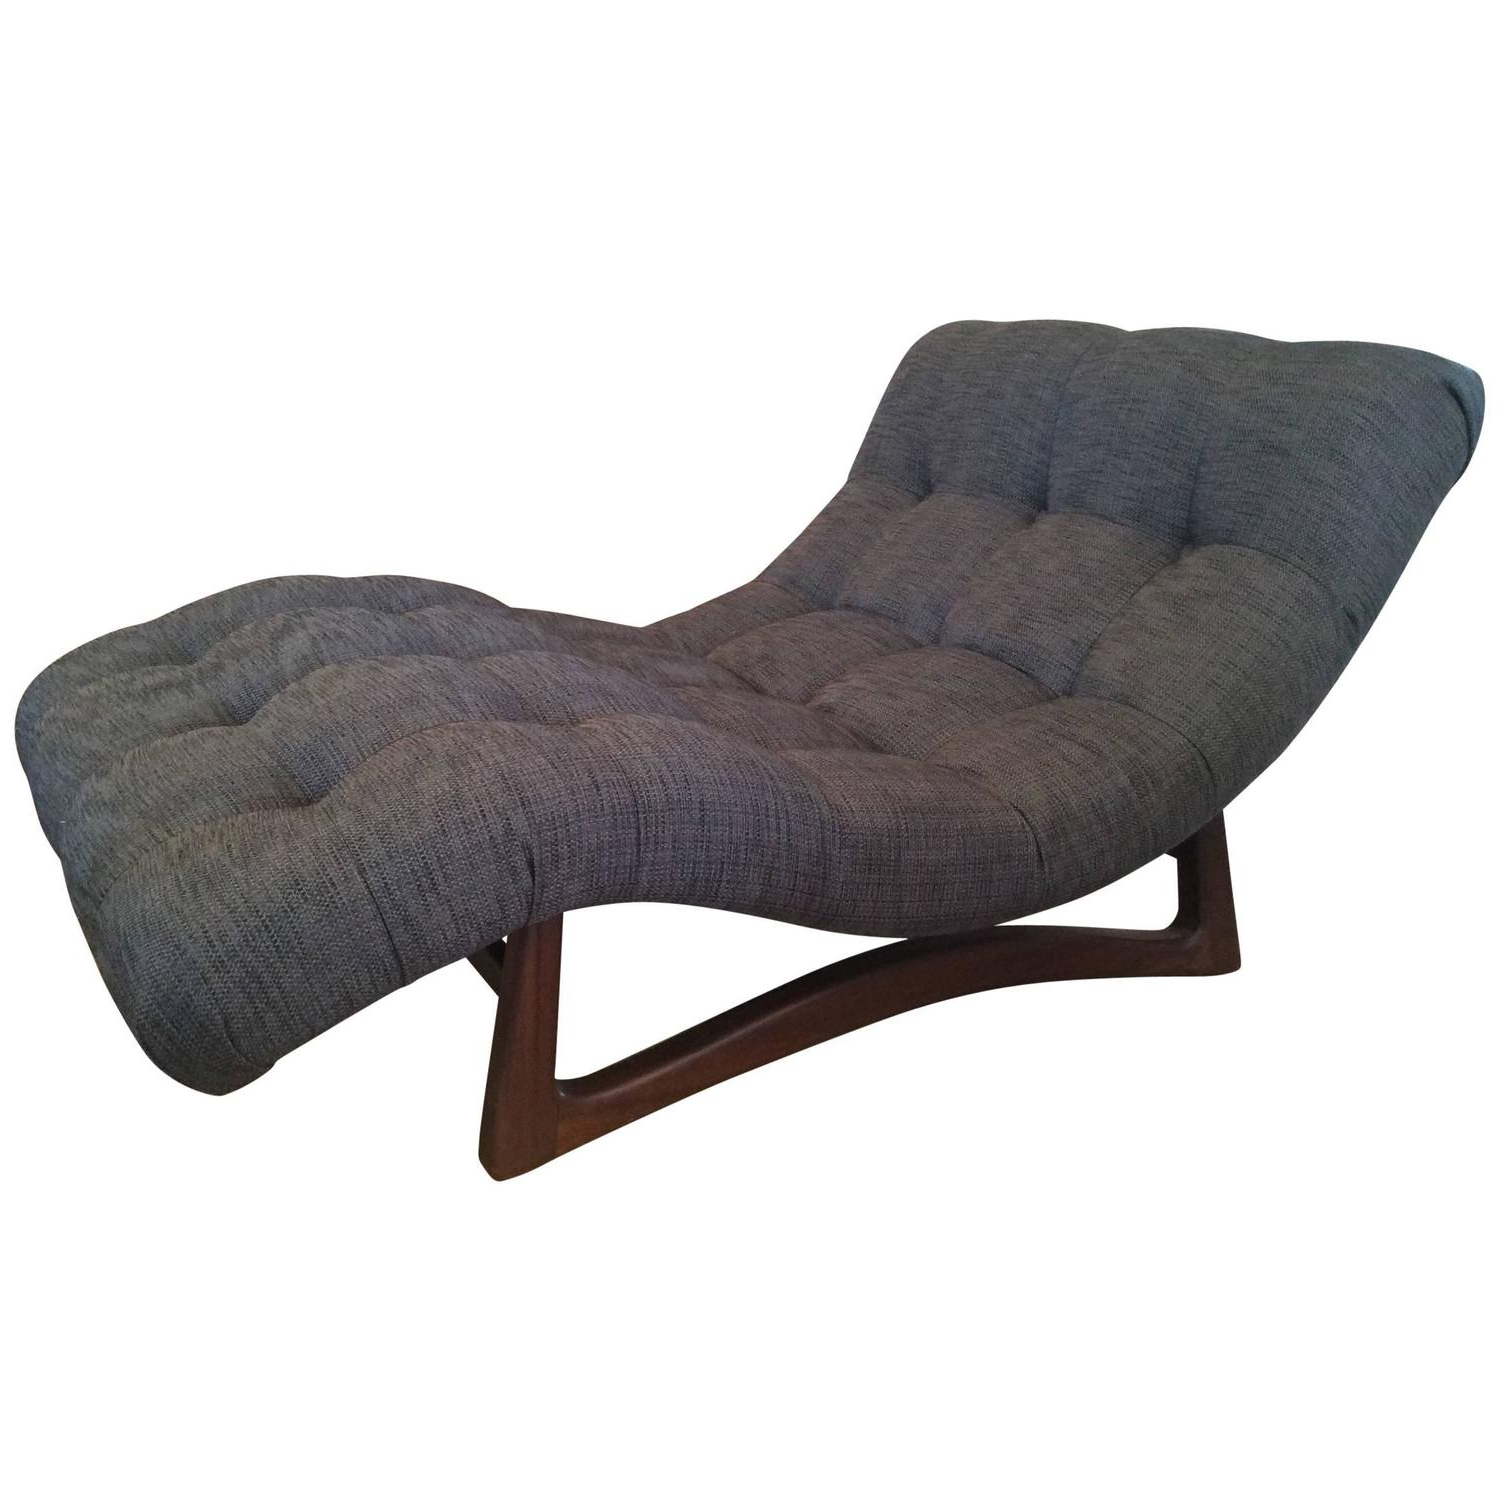 Vintage Adrian Pearsall Curved Chaise Lounge With Walnut Throughout Most Recently Released Curved Folding Chaise Loungers (View 21 of 25)